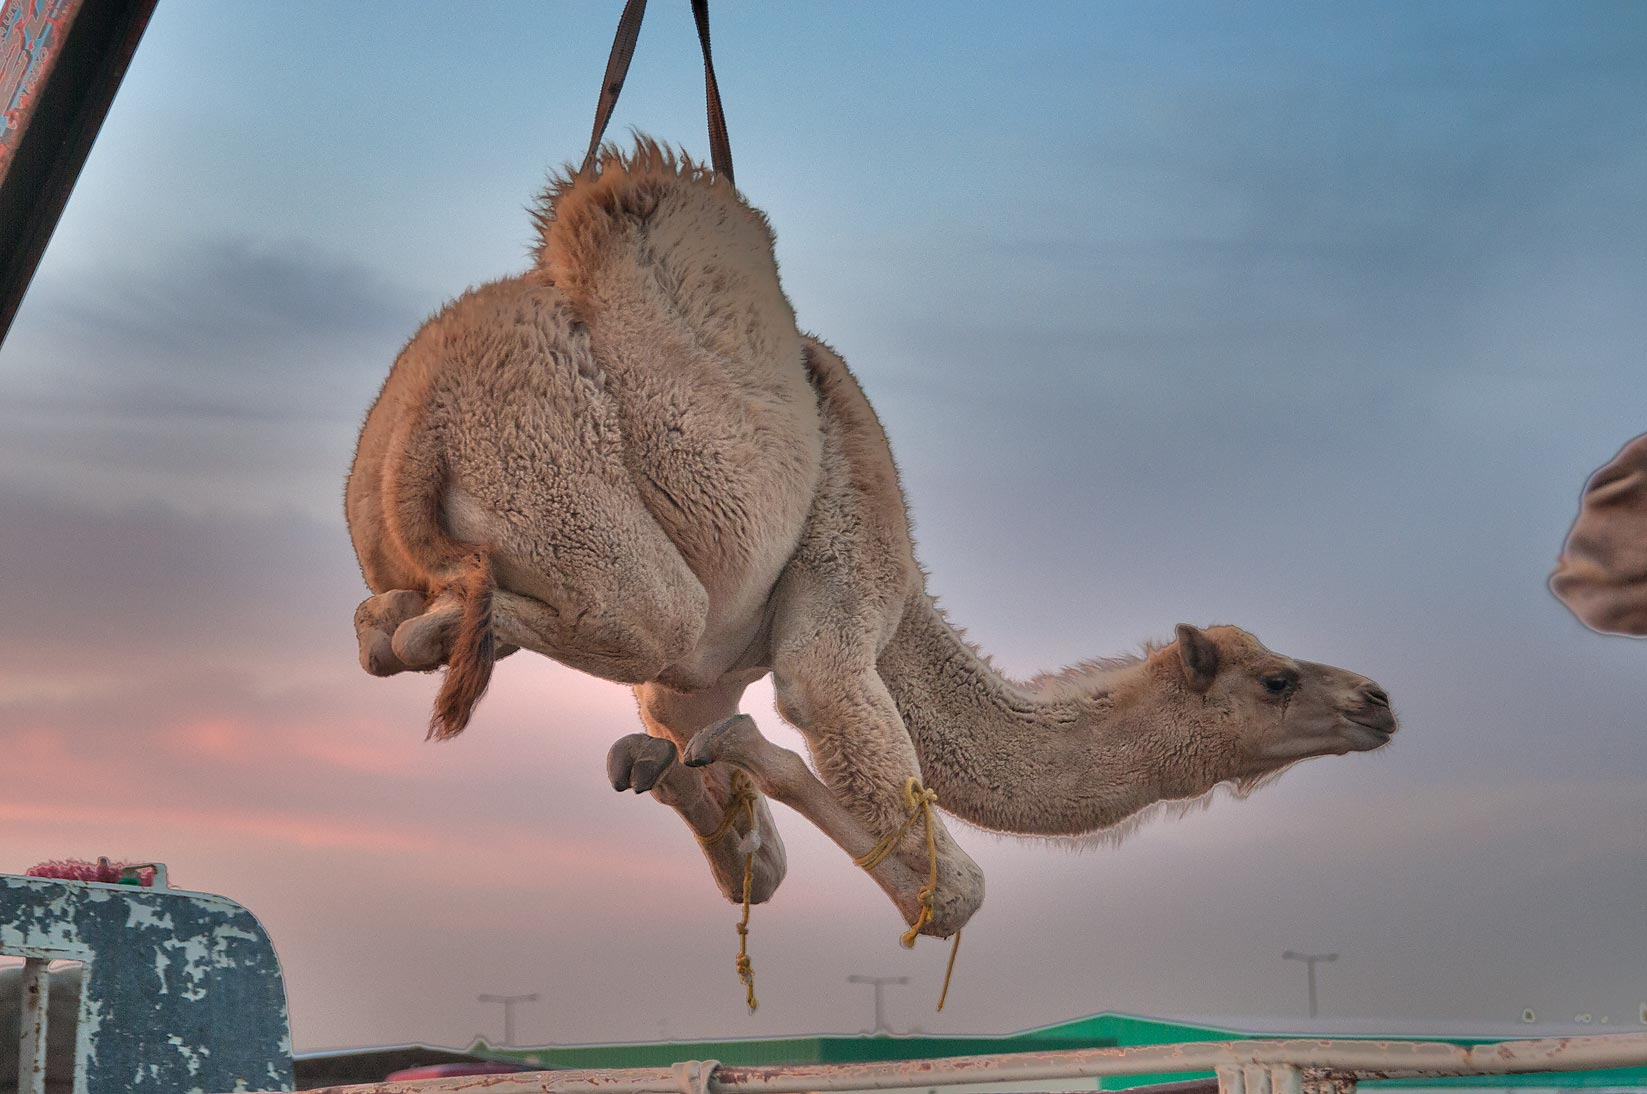 Lifting a camel from a truck by crane in Camel Market (Souq). Doha, Qatar